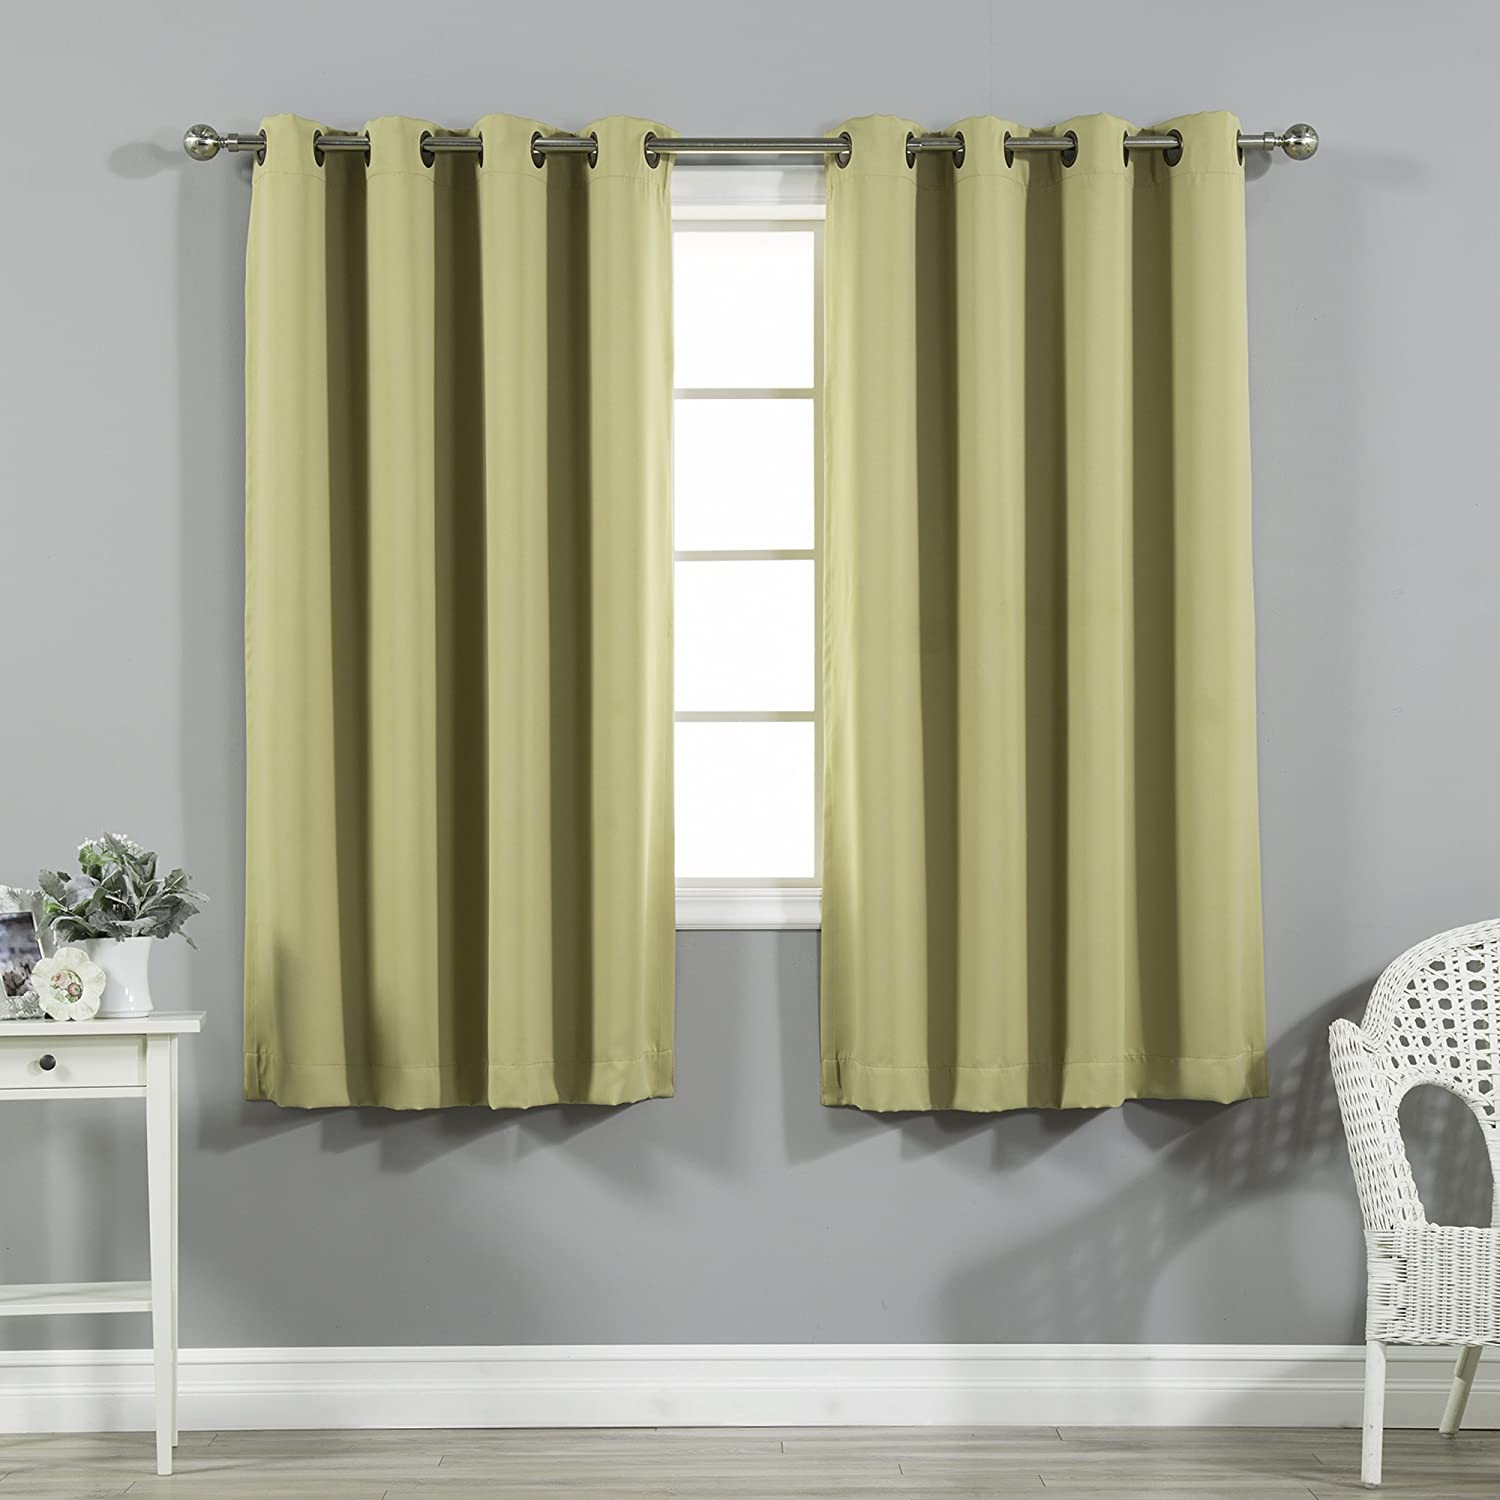 Best Home Fashion Premium Thermal Insulated Blackout Curtains - Antique Bronze Grommet Top - Sage